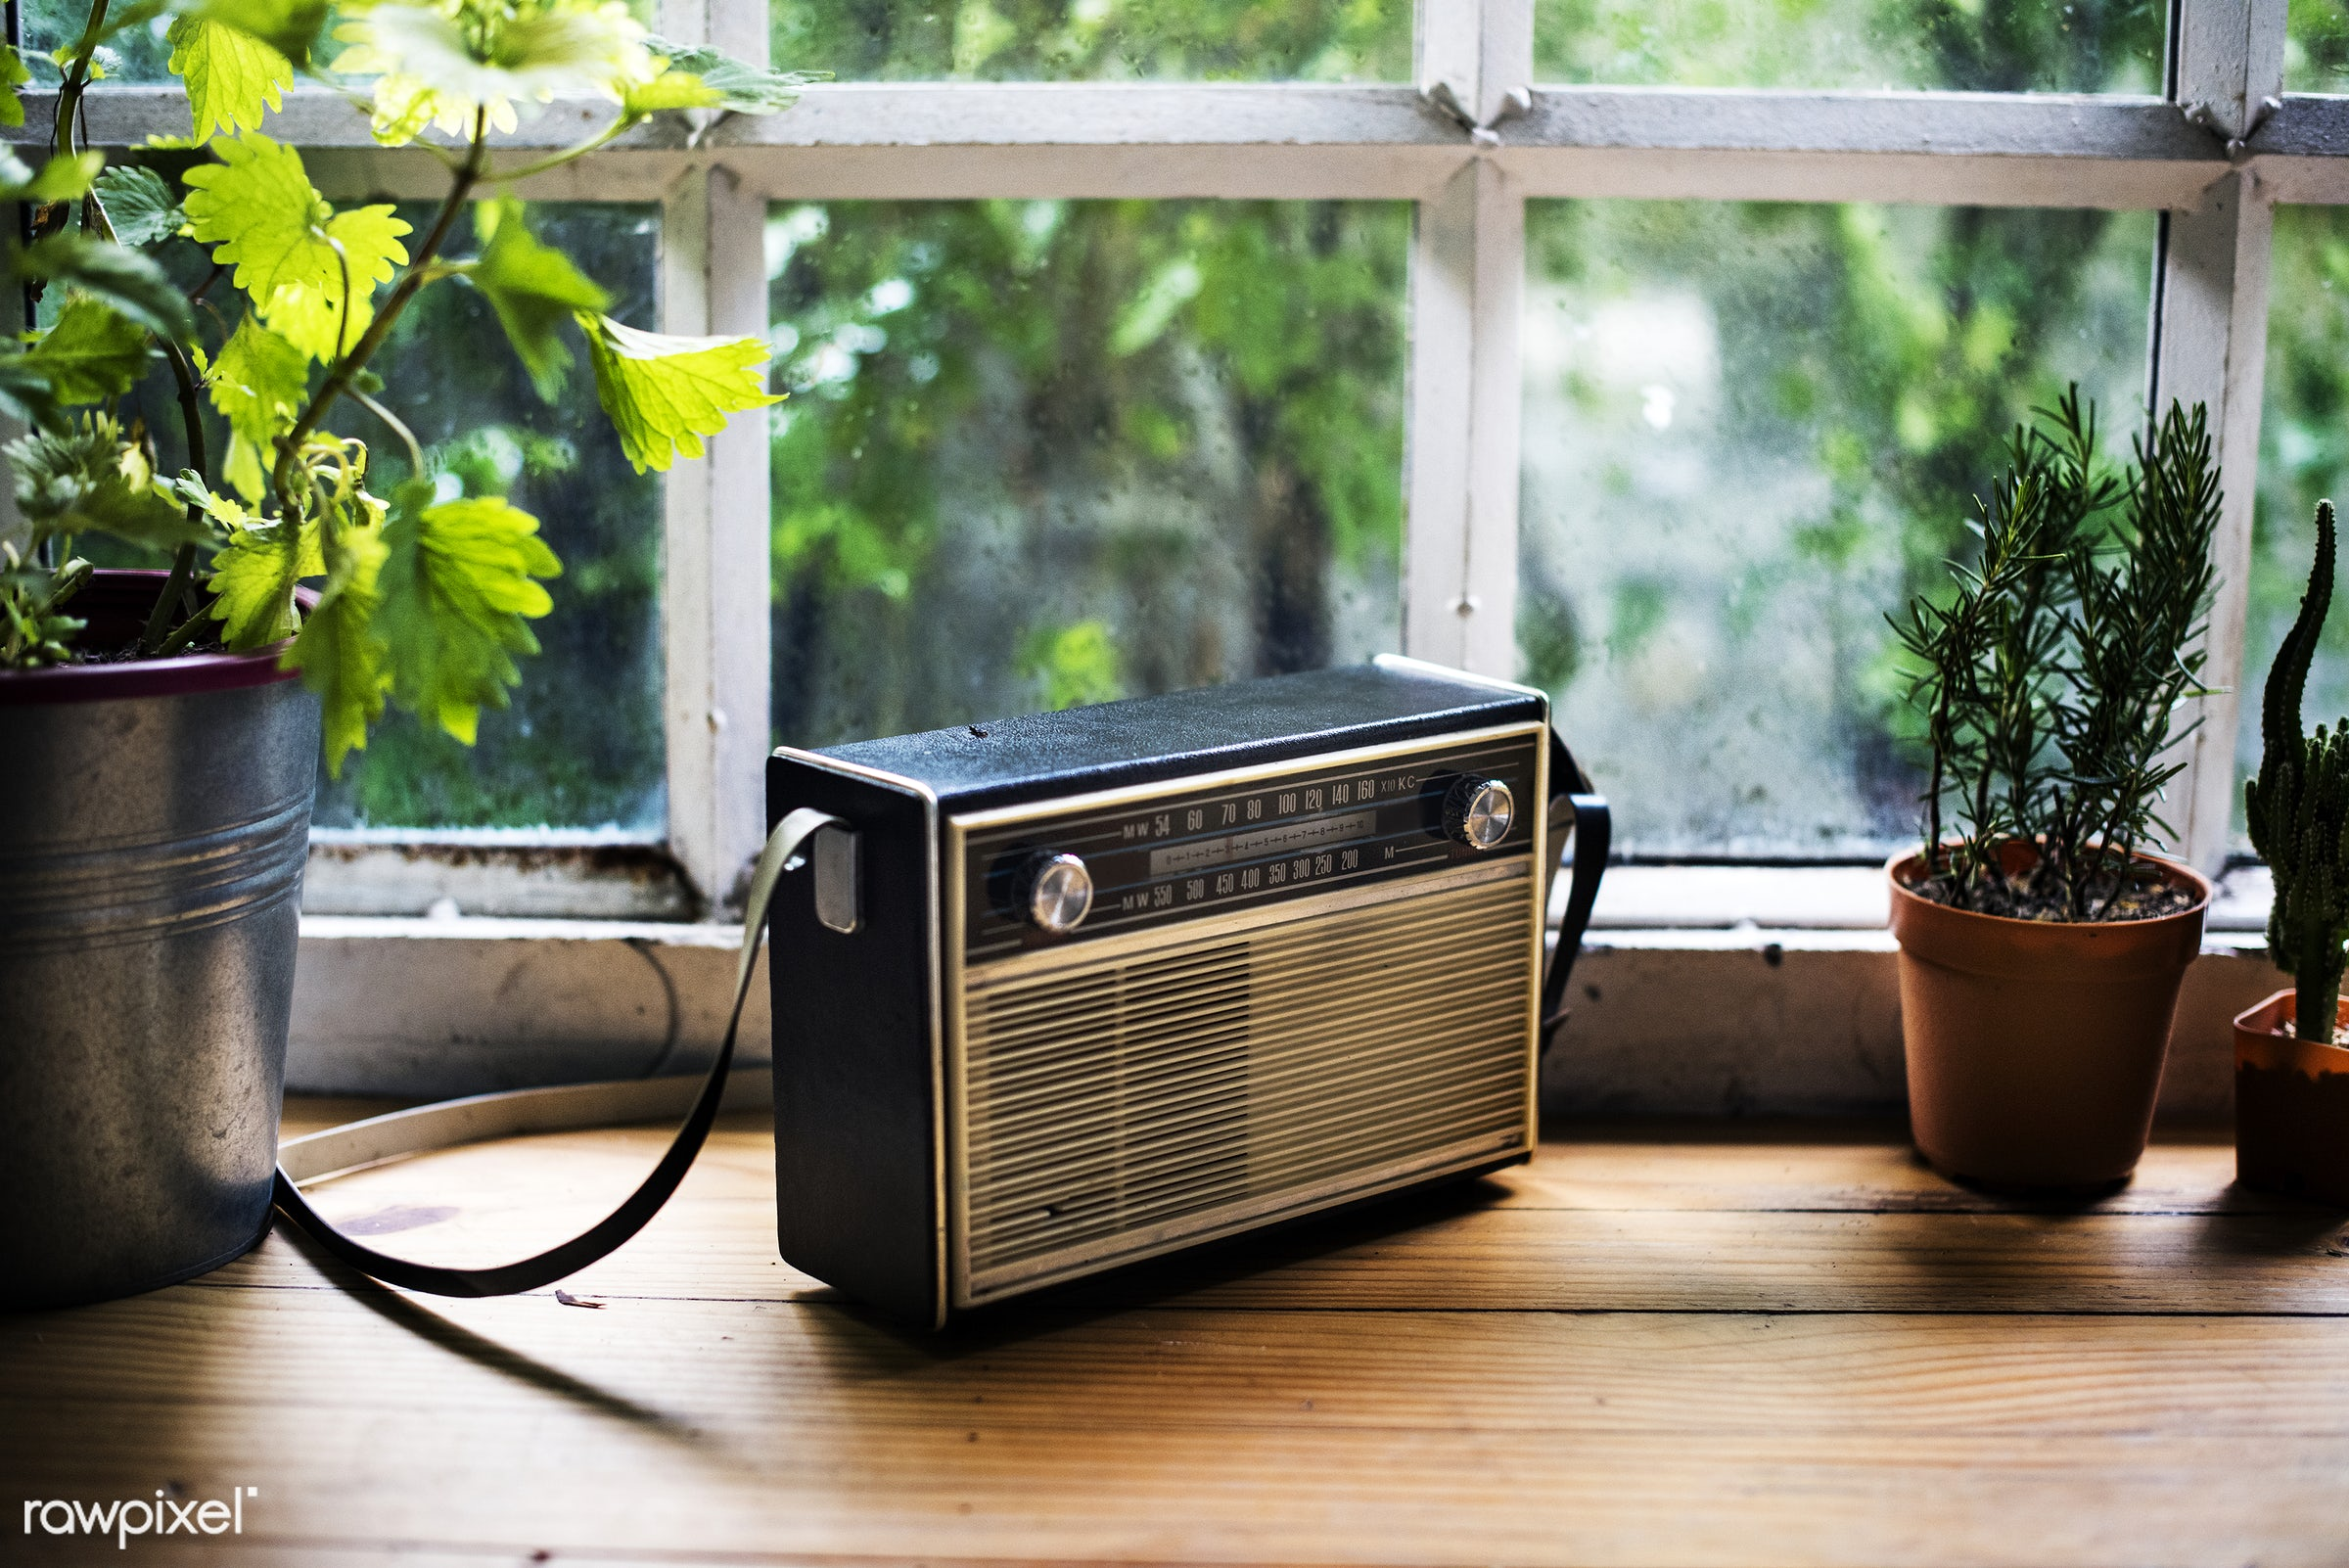 nobody, old school, plants, retro, nature, glass, objects, closeup, decoration, vintage, green, old-fashioned, window, radio...